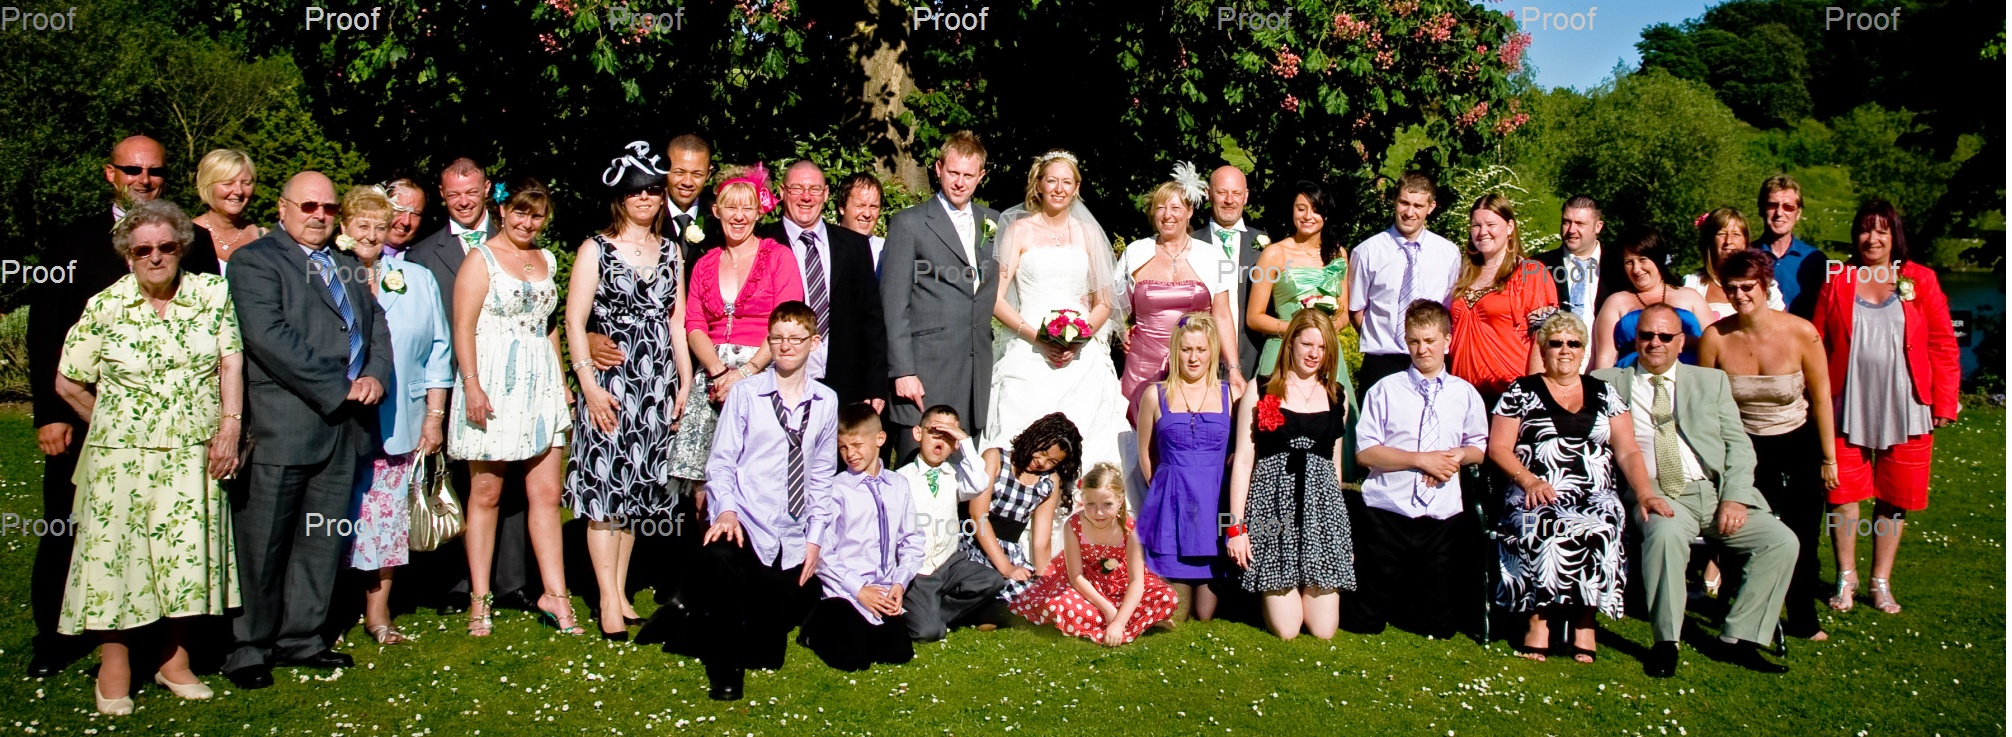 big families need recording for posterity of their wedding day - just fitted them all in phew!